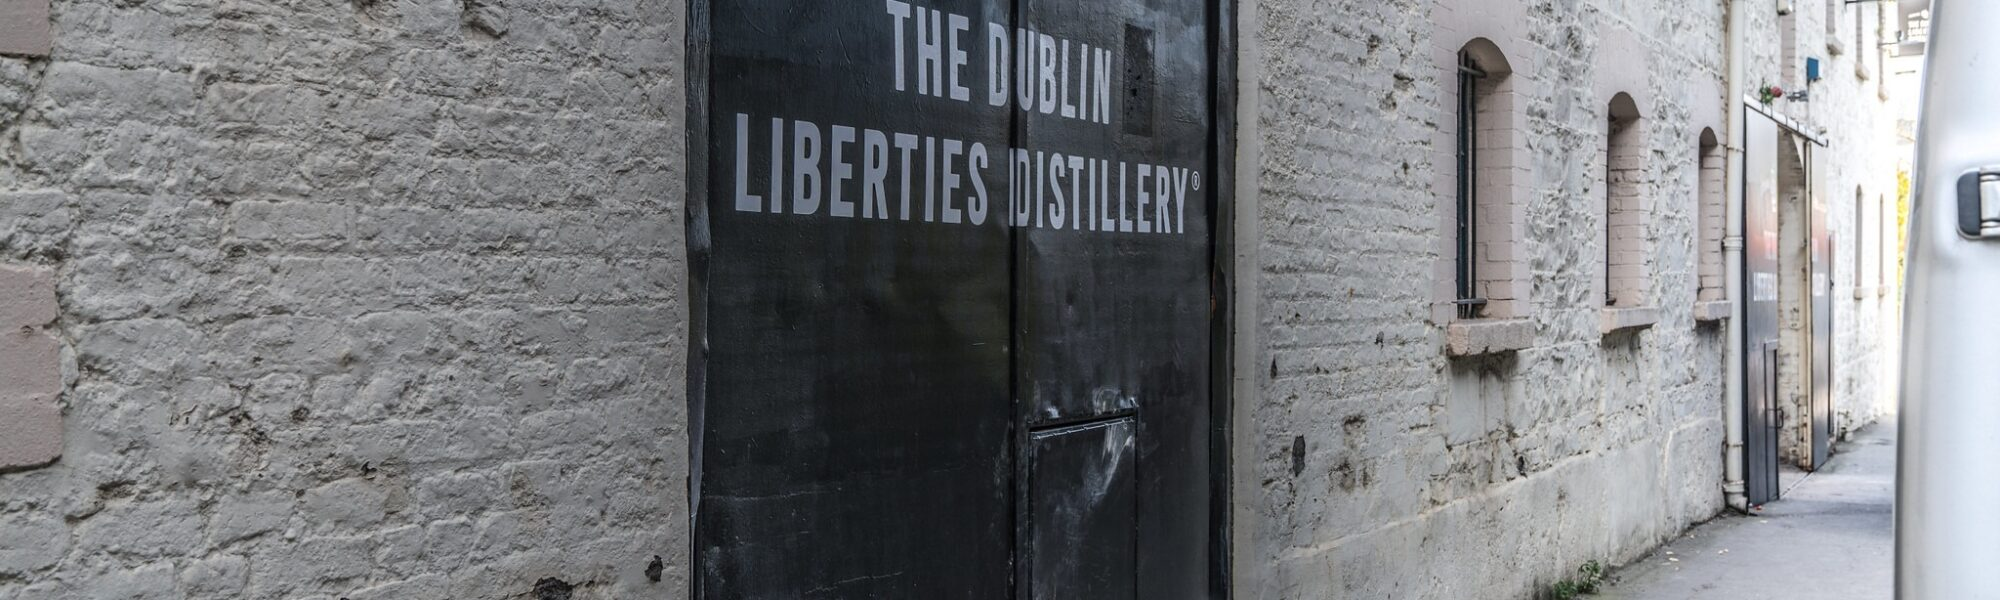 Entrée de la Dublin Liberties Distillery - William Murphy - cc